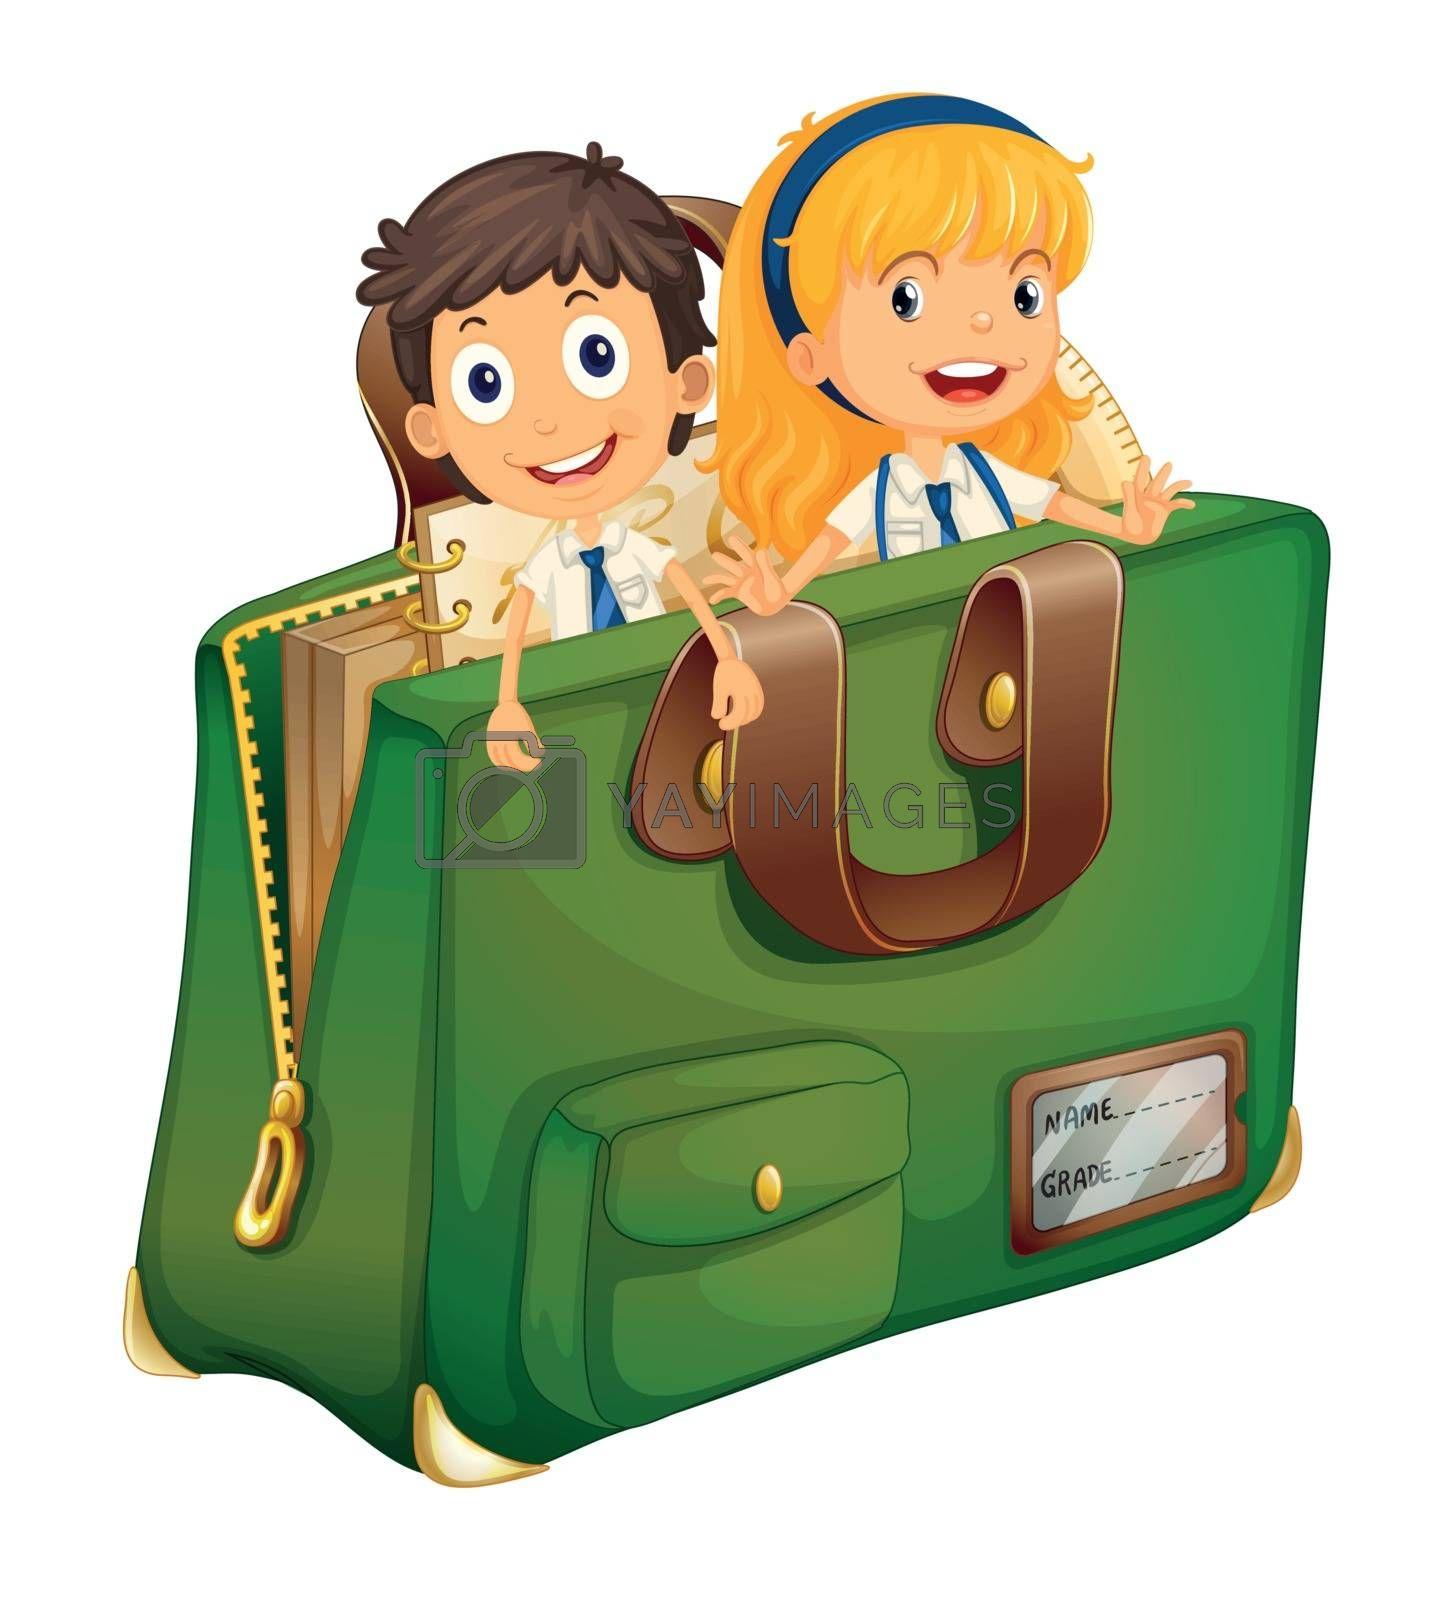 Illustration of kids in a schoolbag